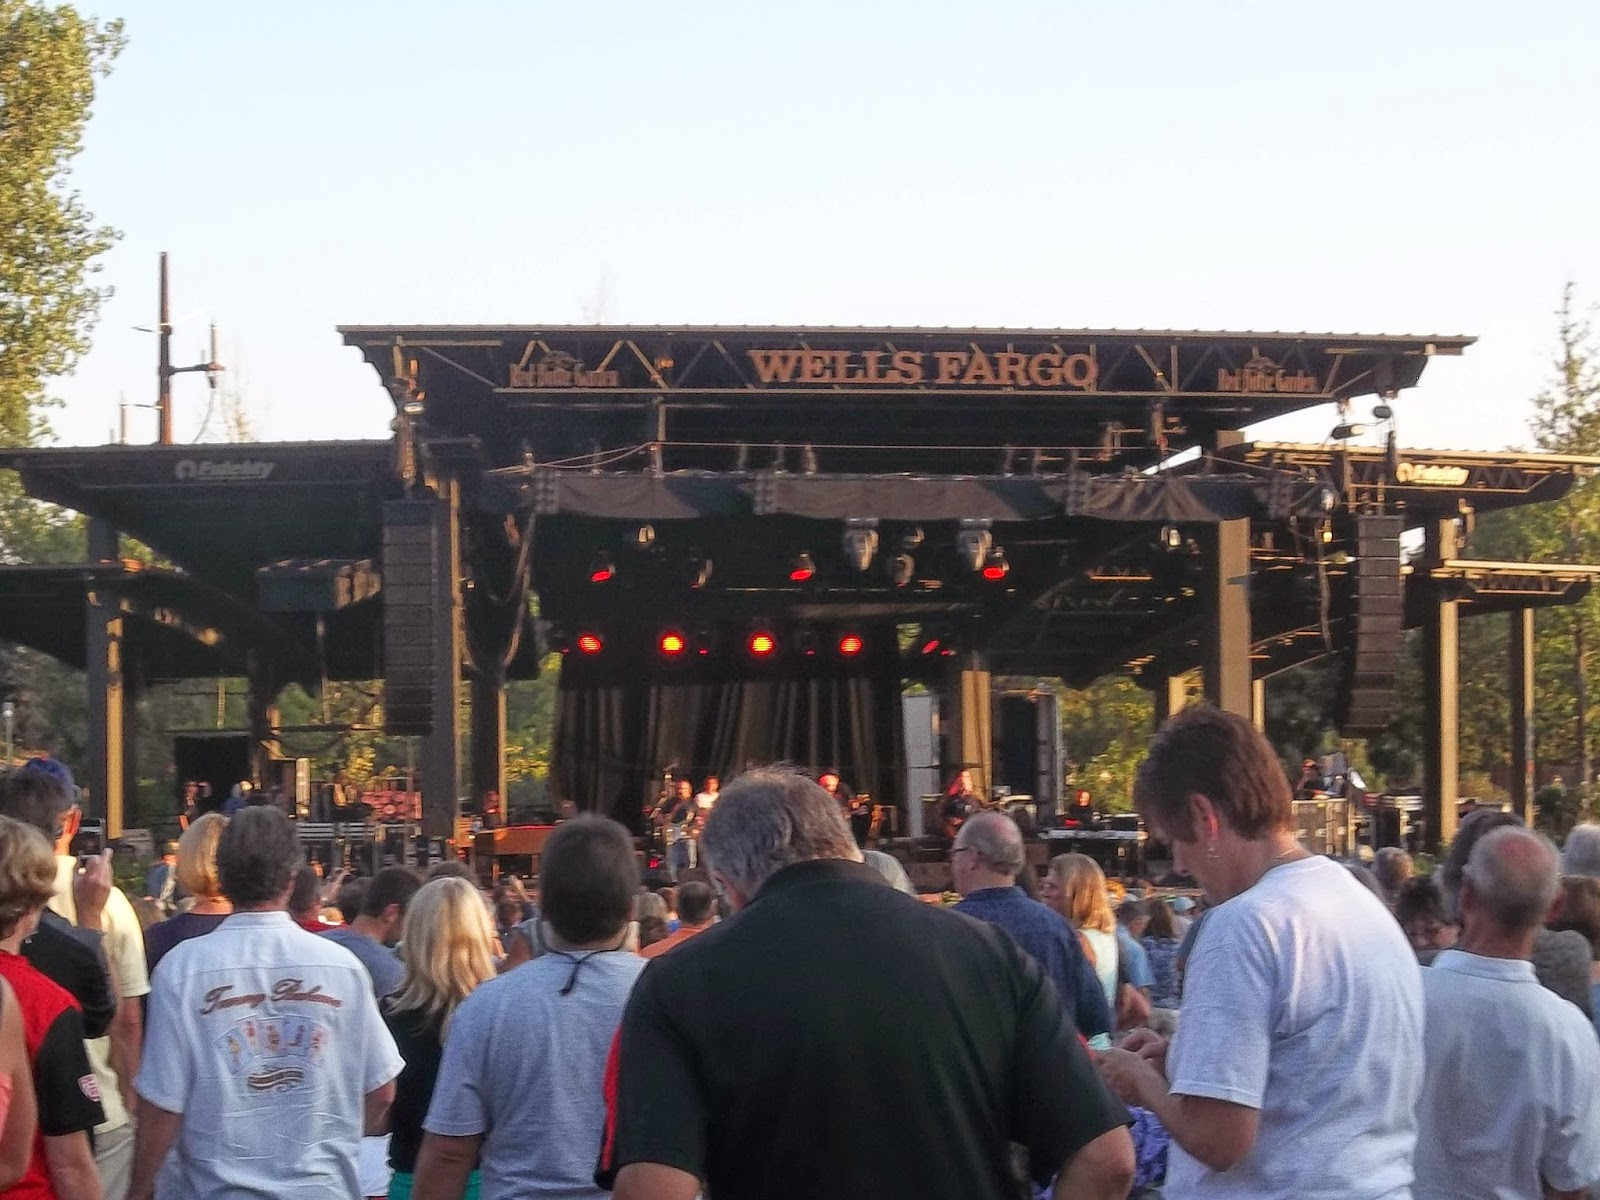 Red Butte Garden Is An Amazing Venue For Outdoor Concerts. This Picture Is  From The Crosby, Stills, U0026 Nash Concert In 2012, Which Was Fabulous (even  Though ...